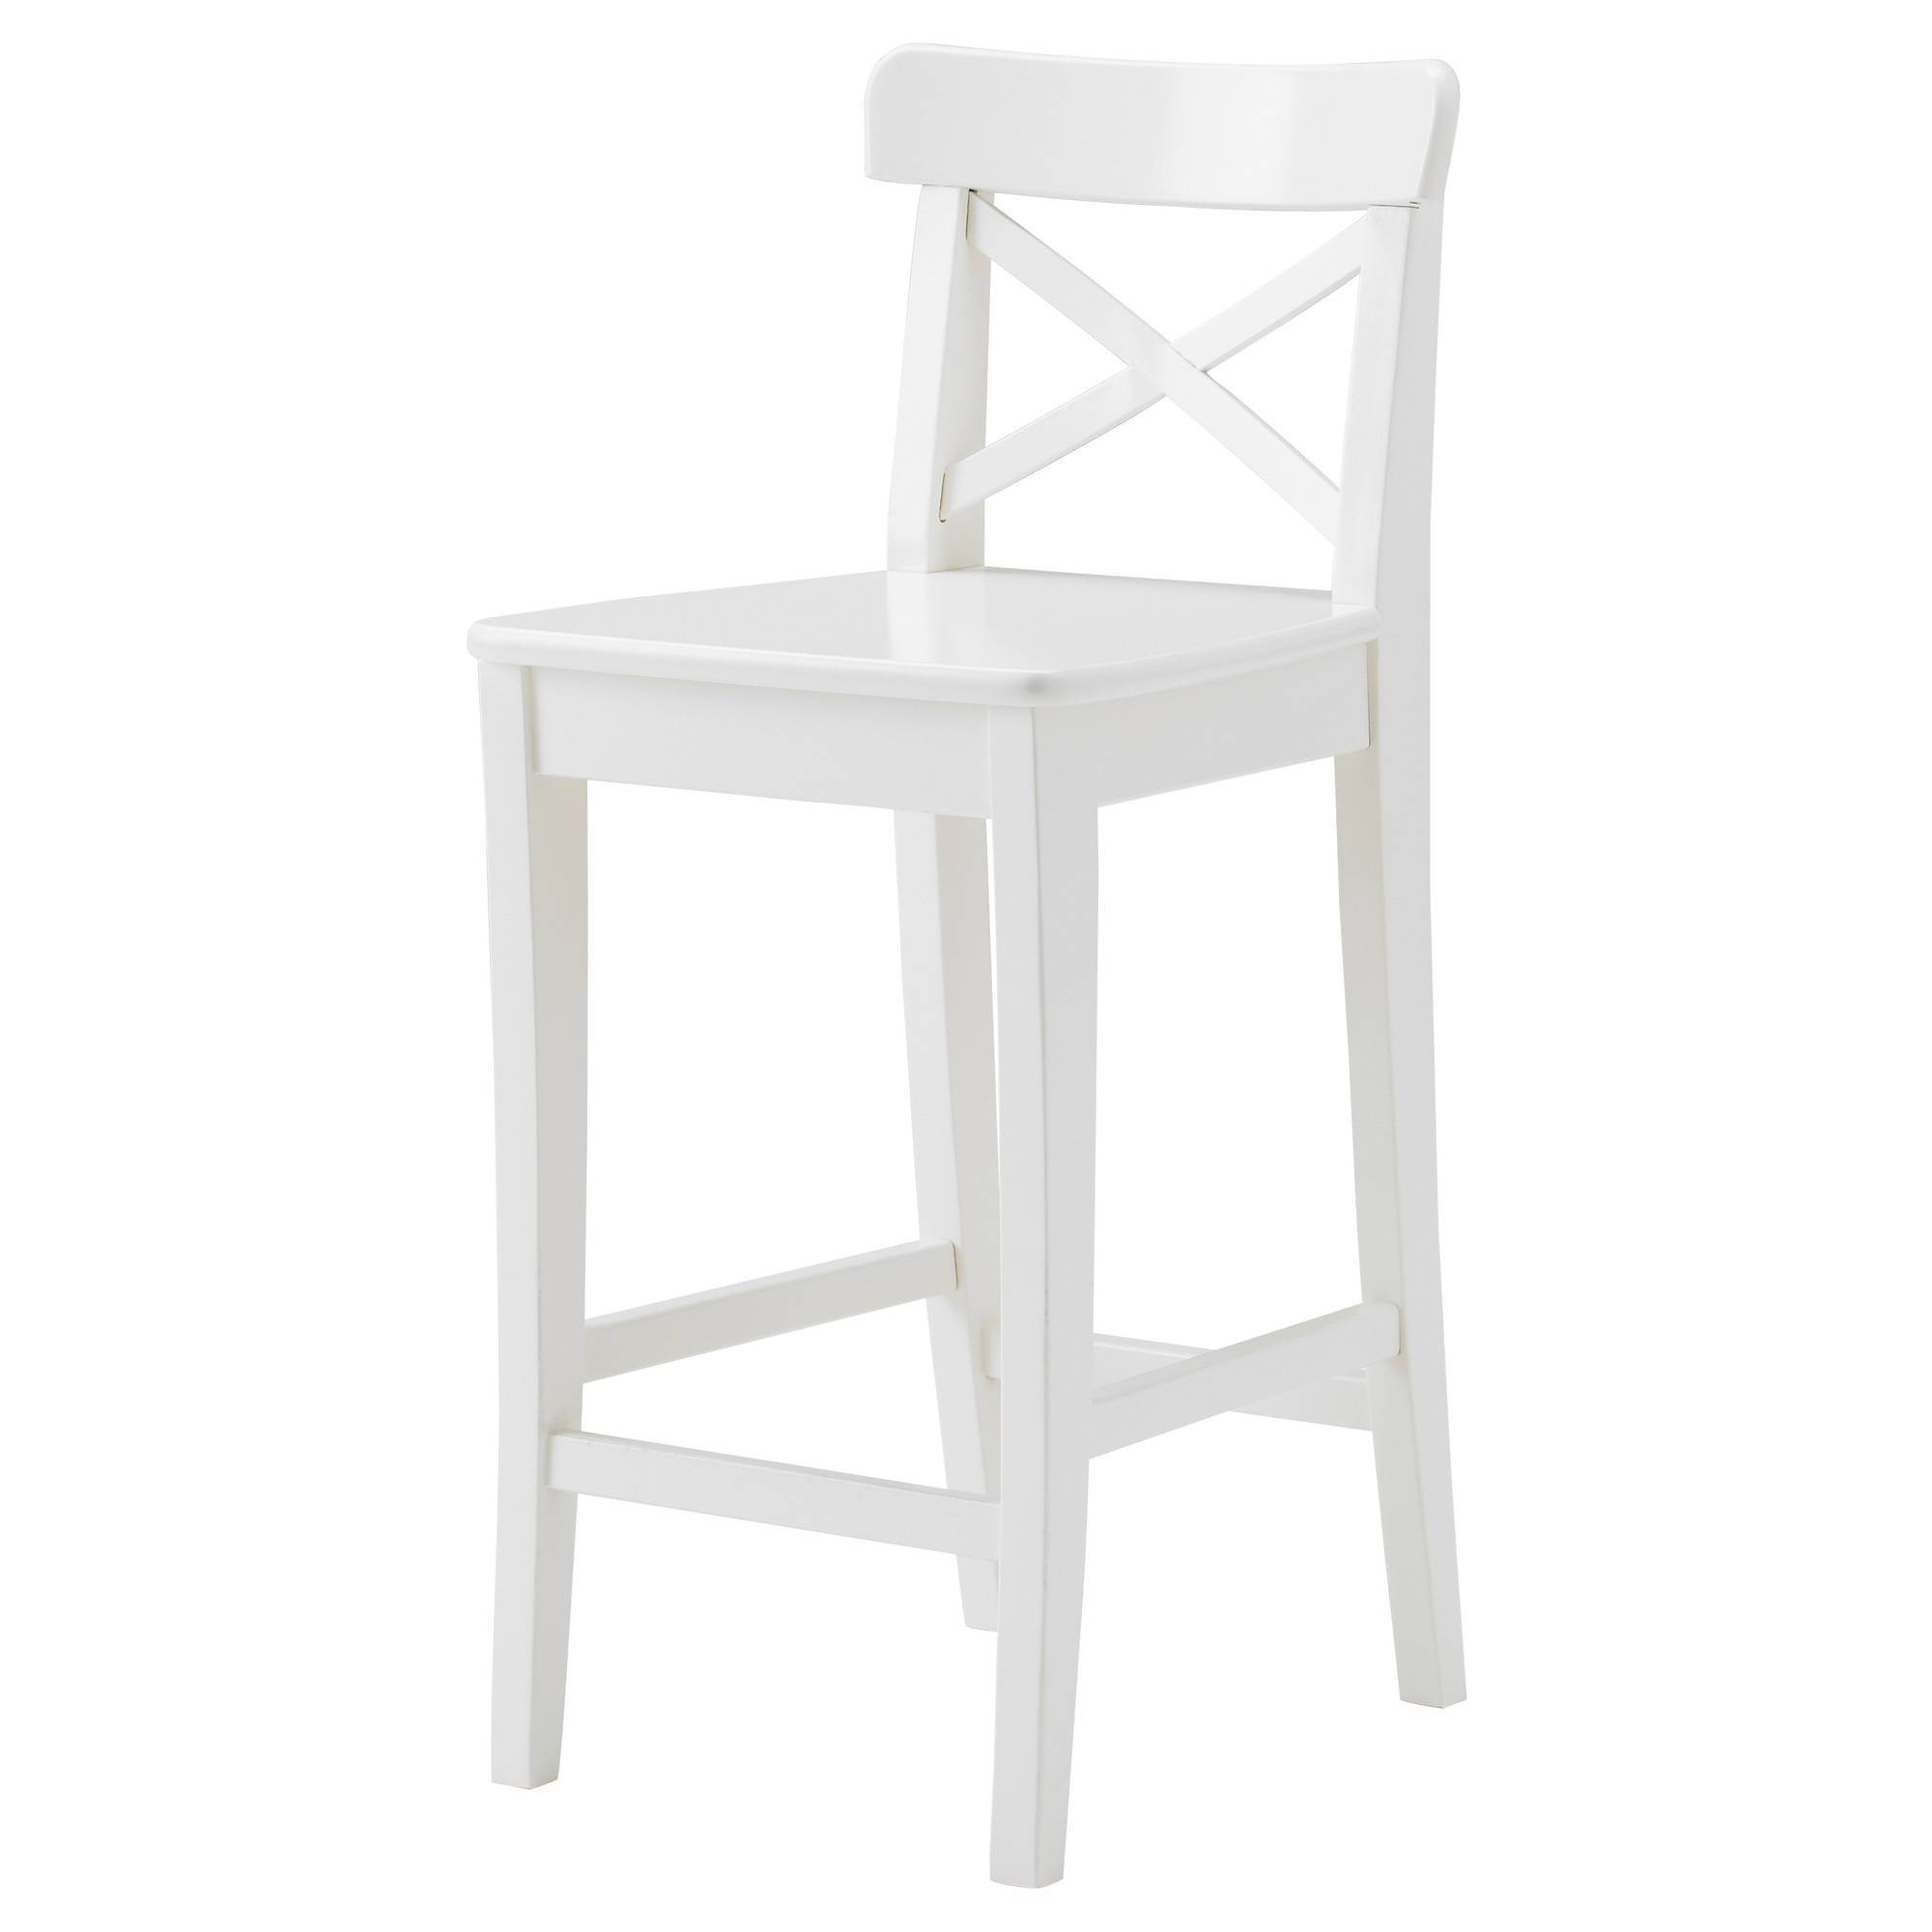 White Wood Bar Stools HomesFeed : Simple White Wood Bar Stools With Back from homesfeed.com size 2000 x 2000 jpeg 111kB